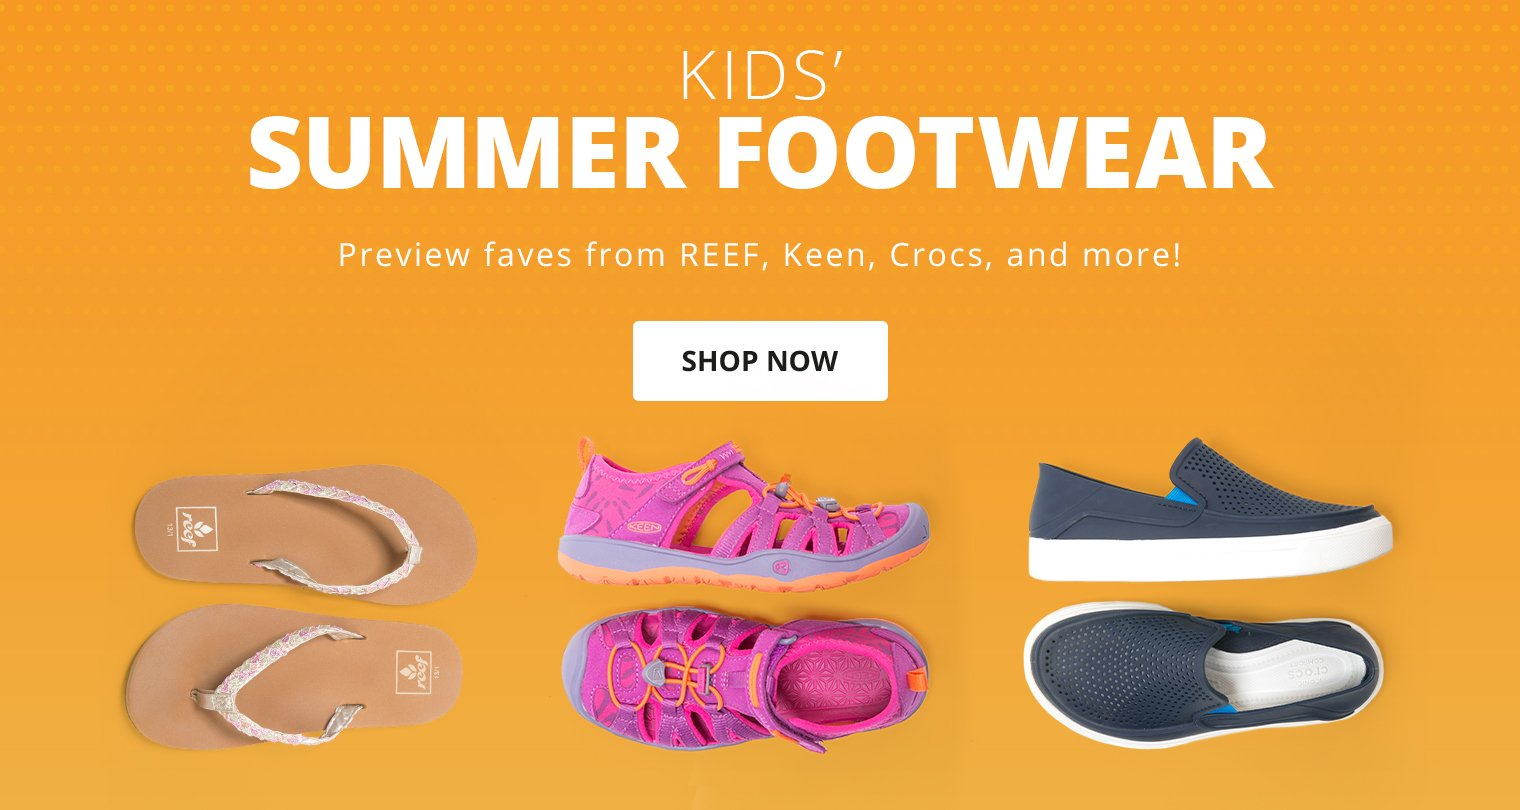 Kids Summer Footwear.Preview faves from Reef,Keen, Crocs and more. Shop Now.